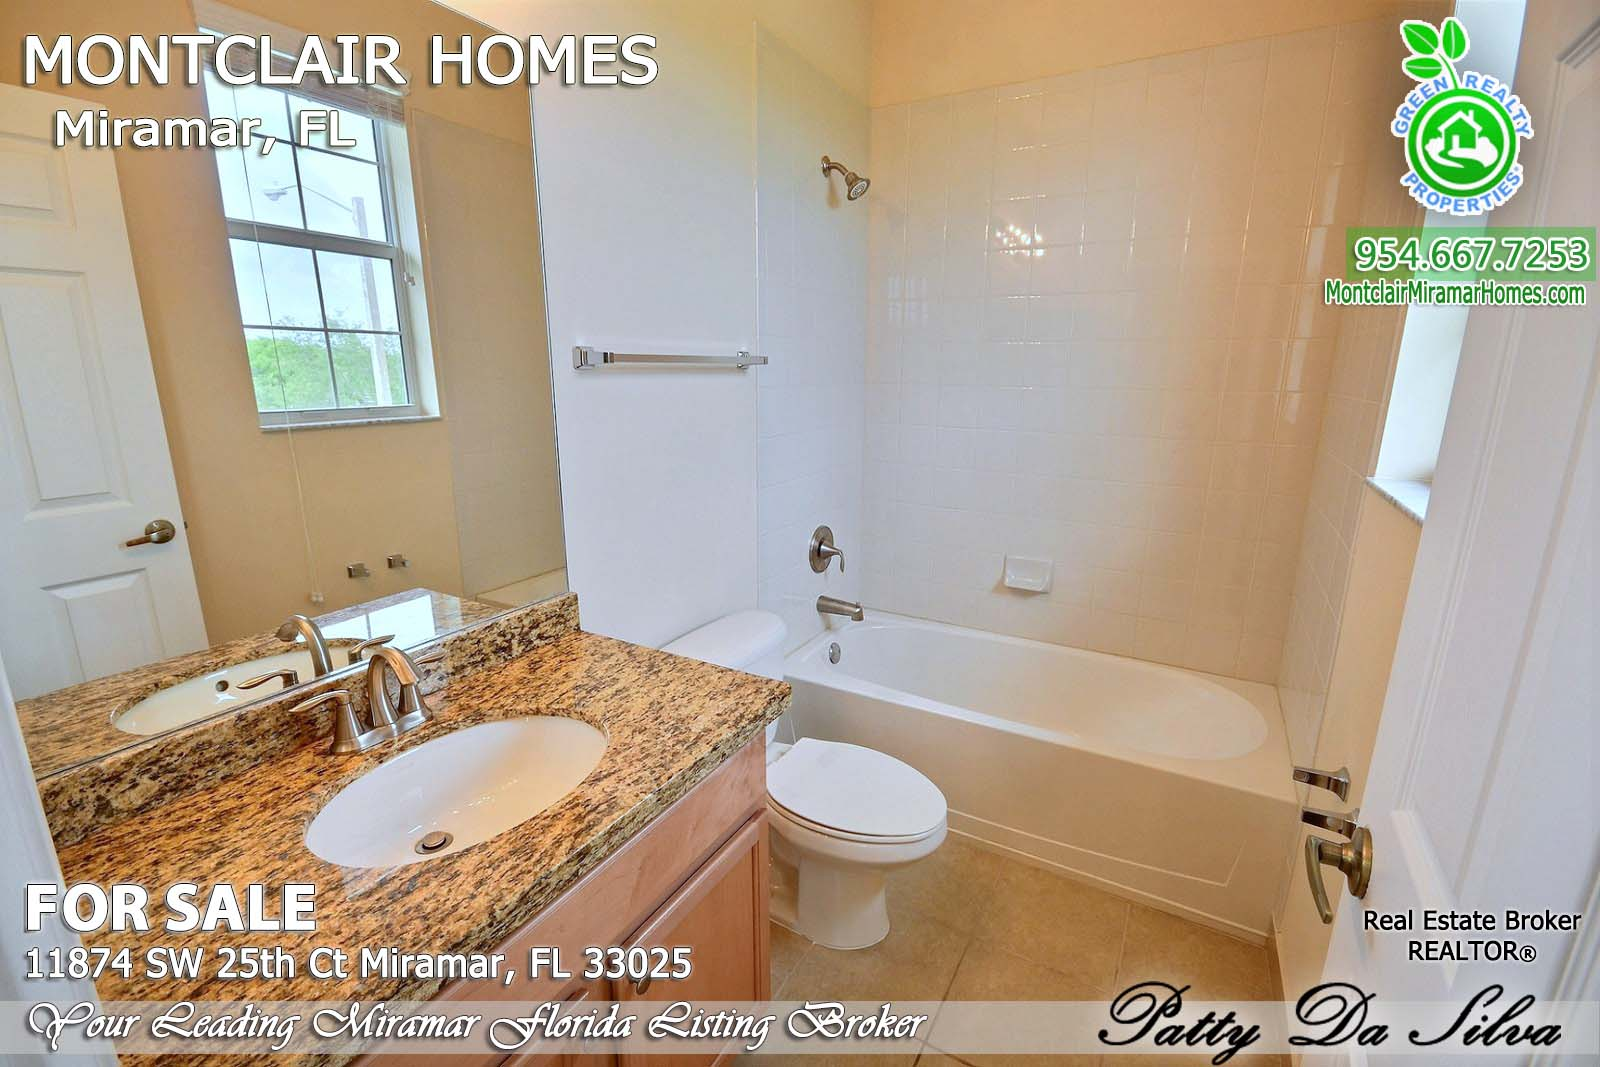 11874 SW 25 CT, Miramar FL 33025 - Montclair (15) - Copy